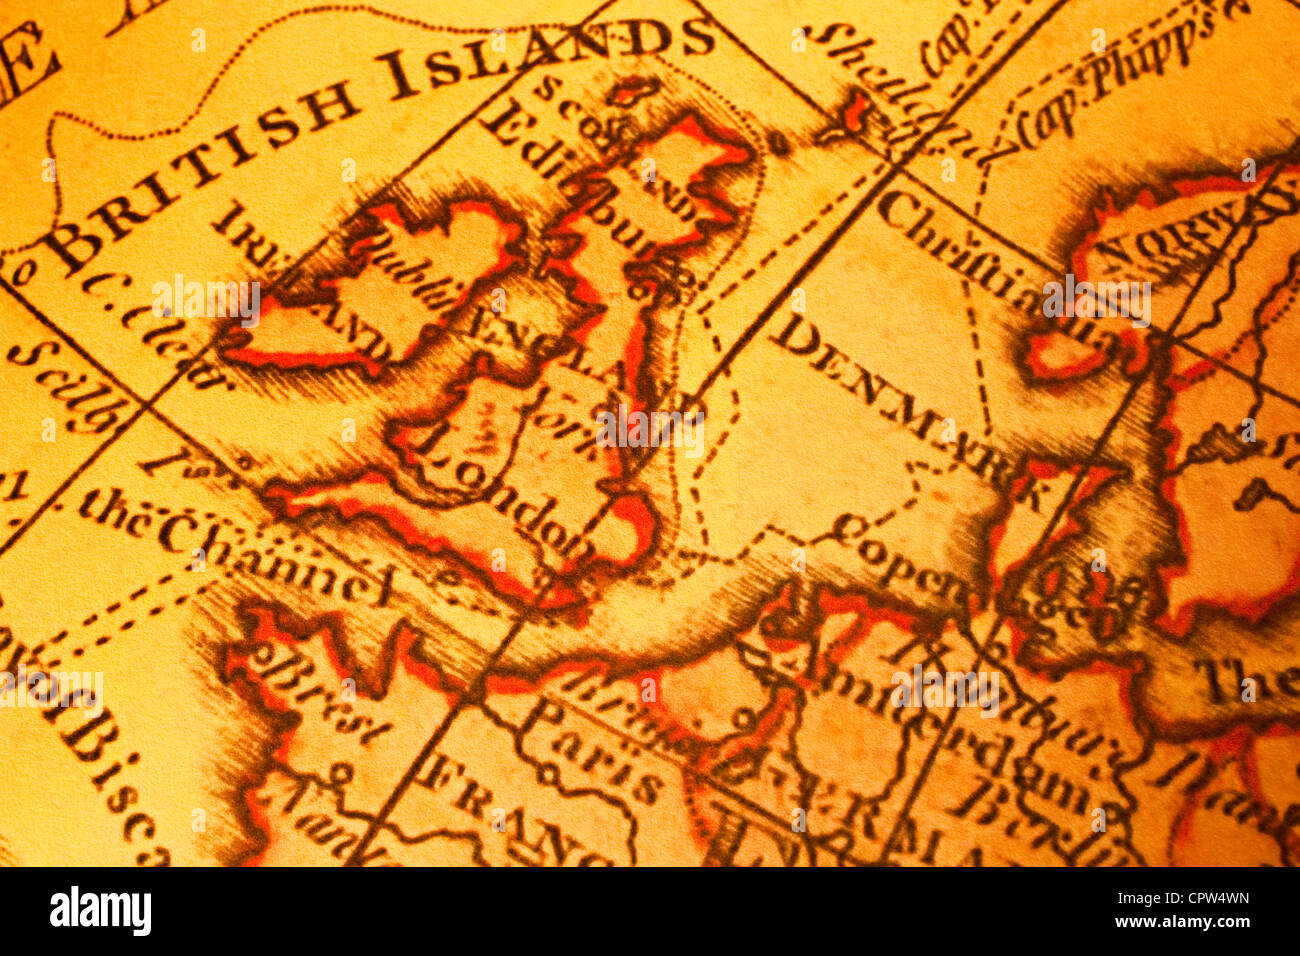 Old map of Britain British Isles UK United Kngdom and Northern Europe. Map is from 1786 and is out of copyright. - Stock Image